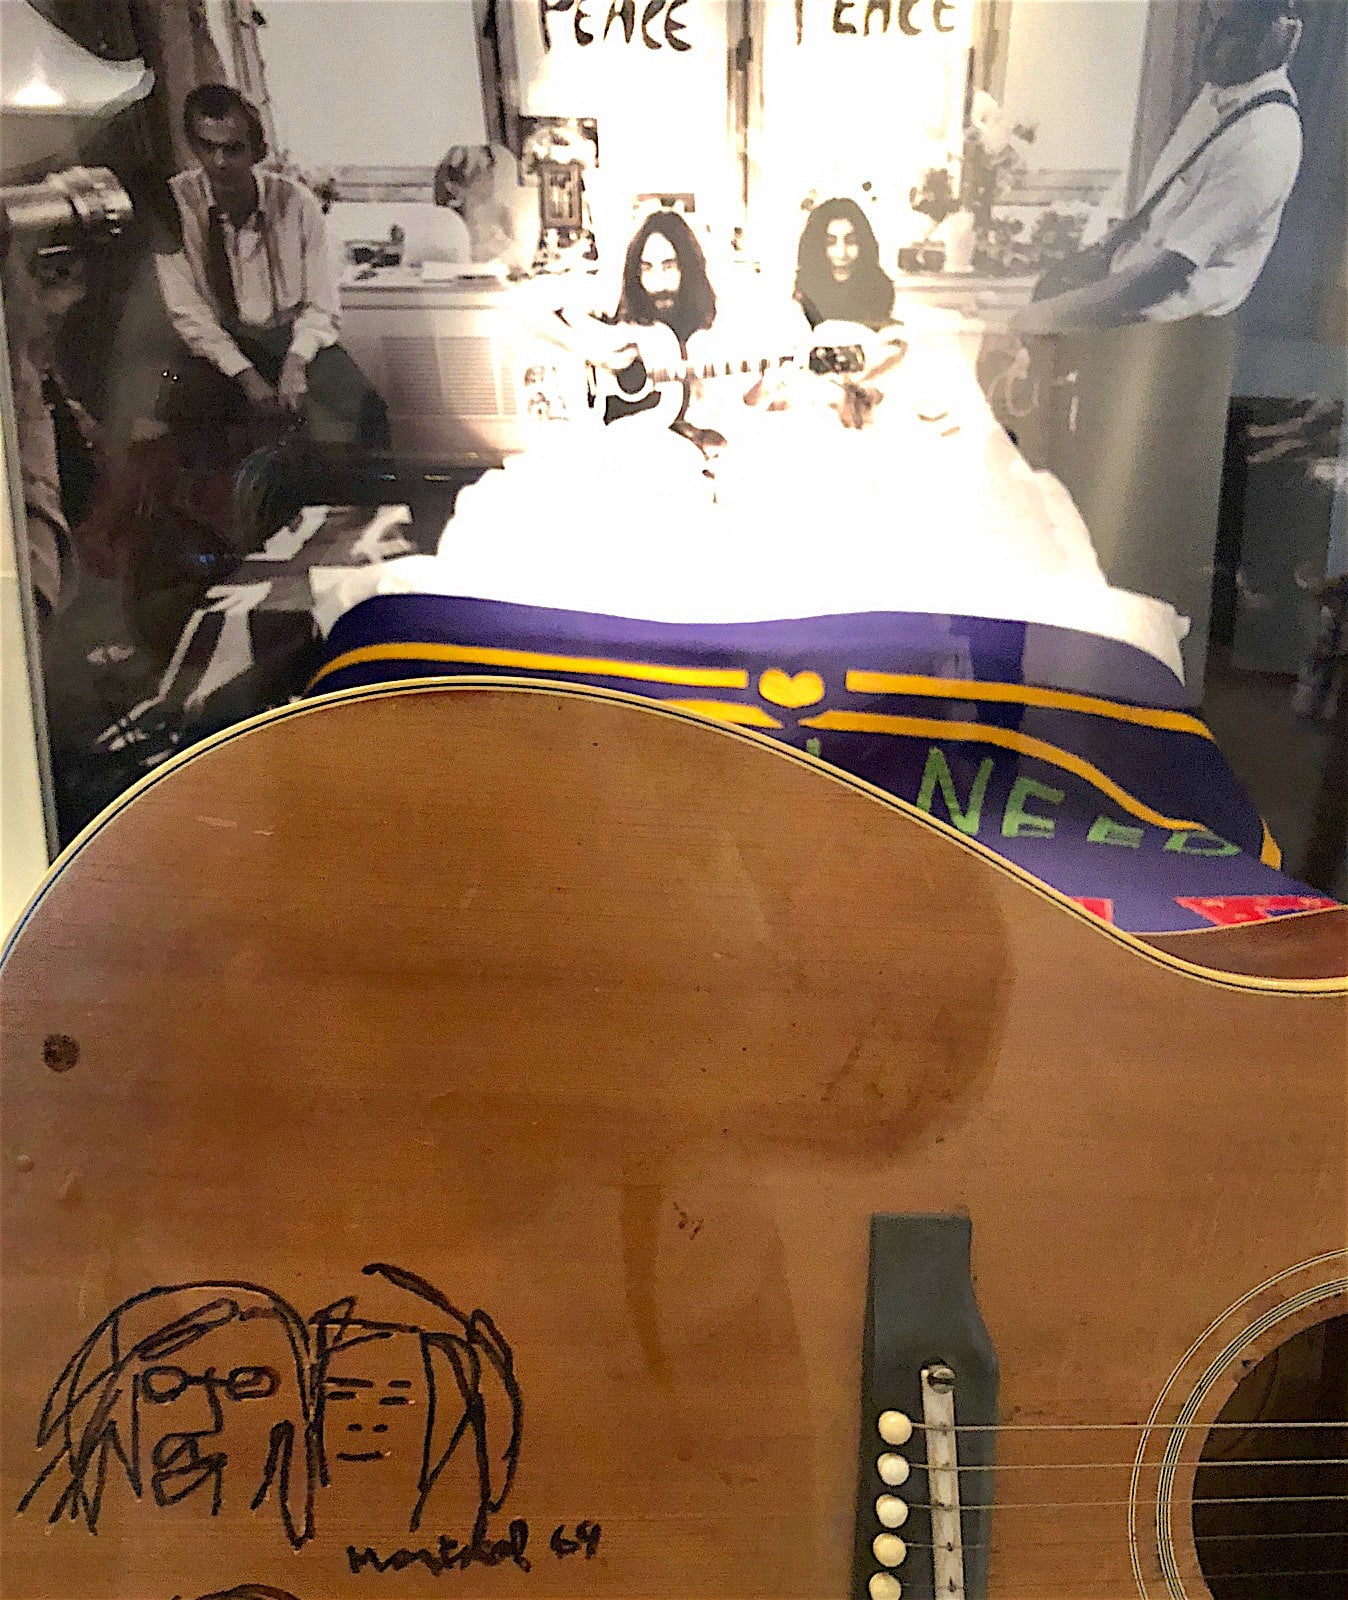 john-lennon-yoko-ono-bed-museum-of-liverpool